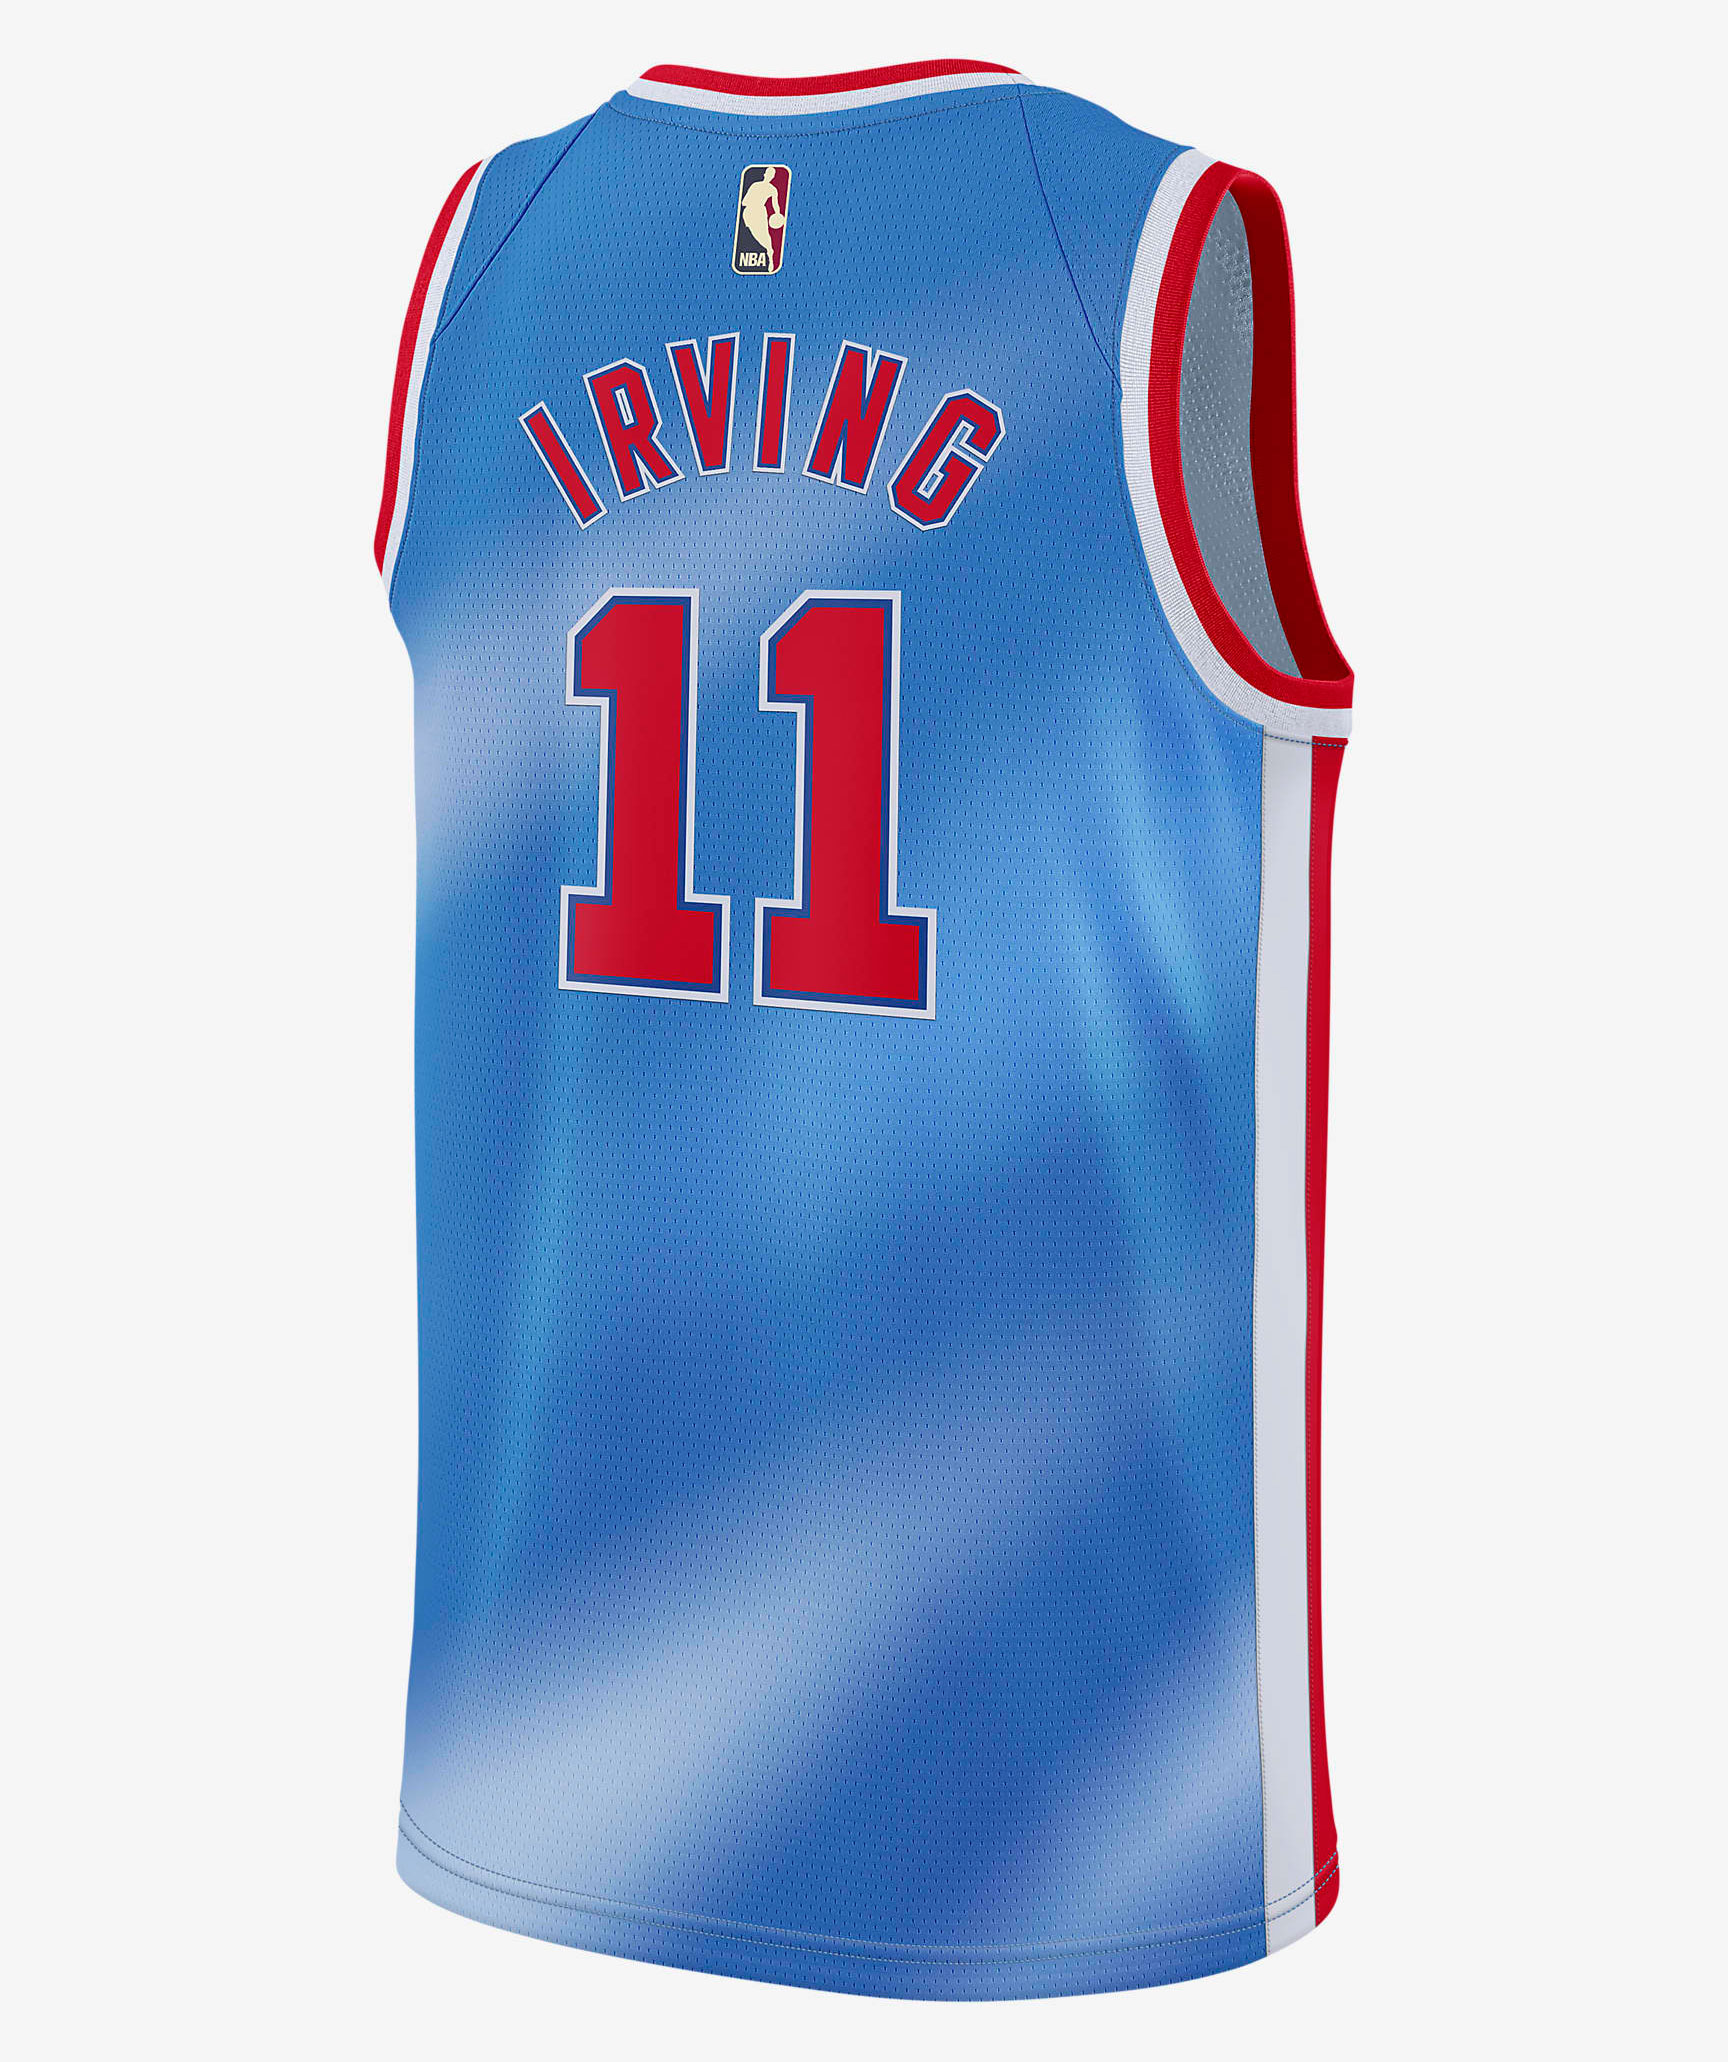 nike-brooklyn-nets-kyrie-irving-classic-edition-blue-red-jersey-2